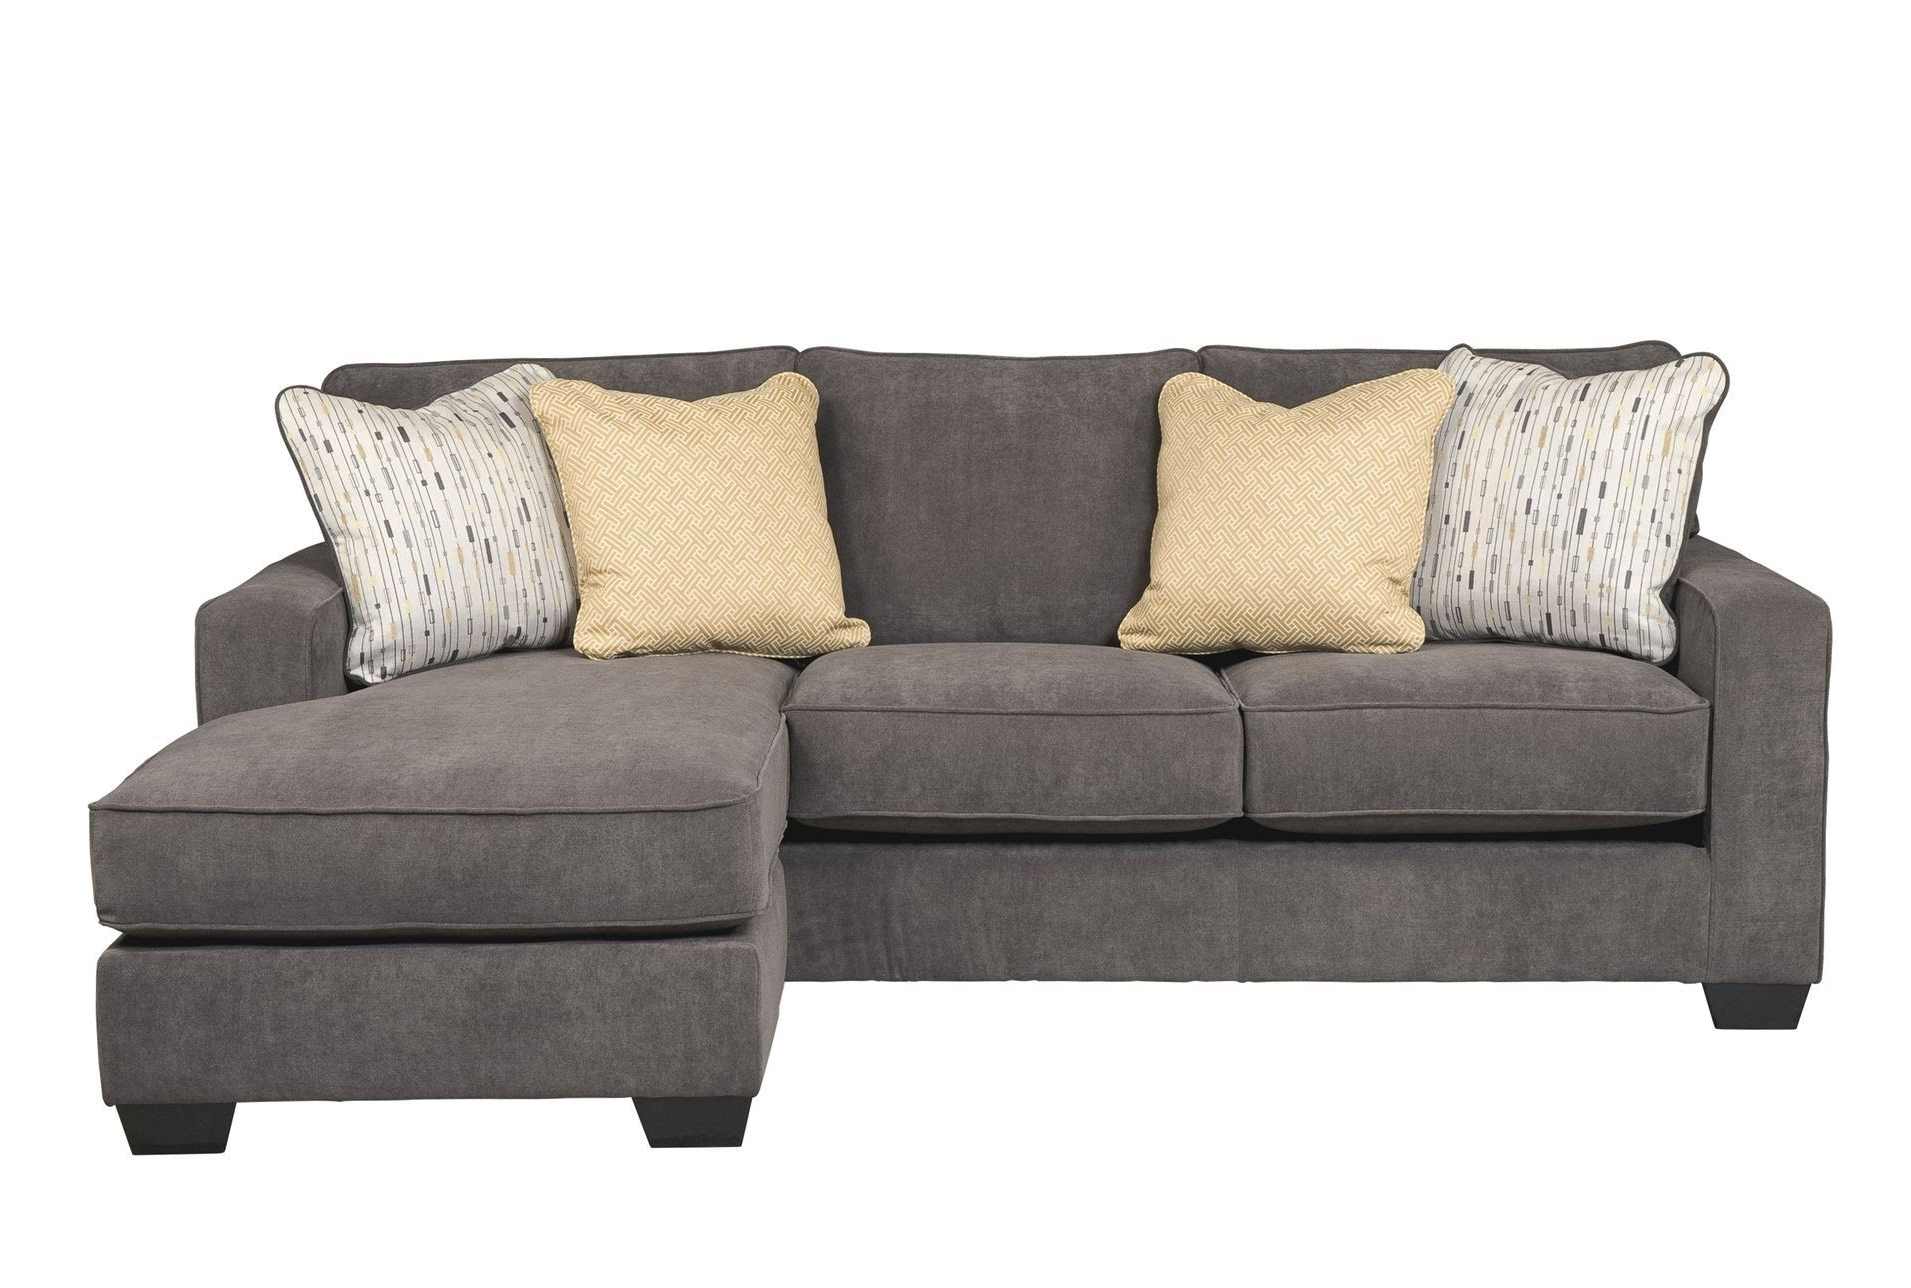 Interesting Couch With Chaise Lounge Ideas – Youtube Intended For Favorite Sofa Chaise Lounges (View 12 of 15)